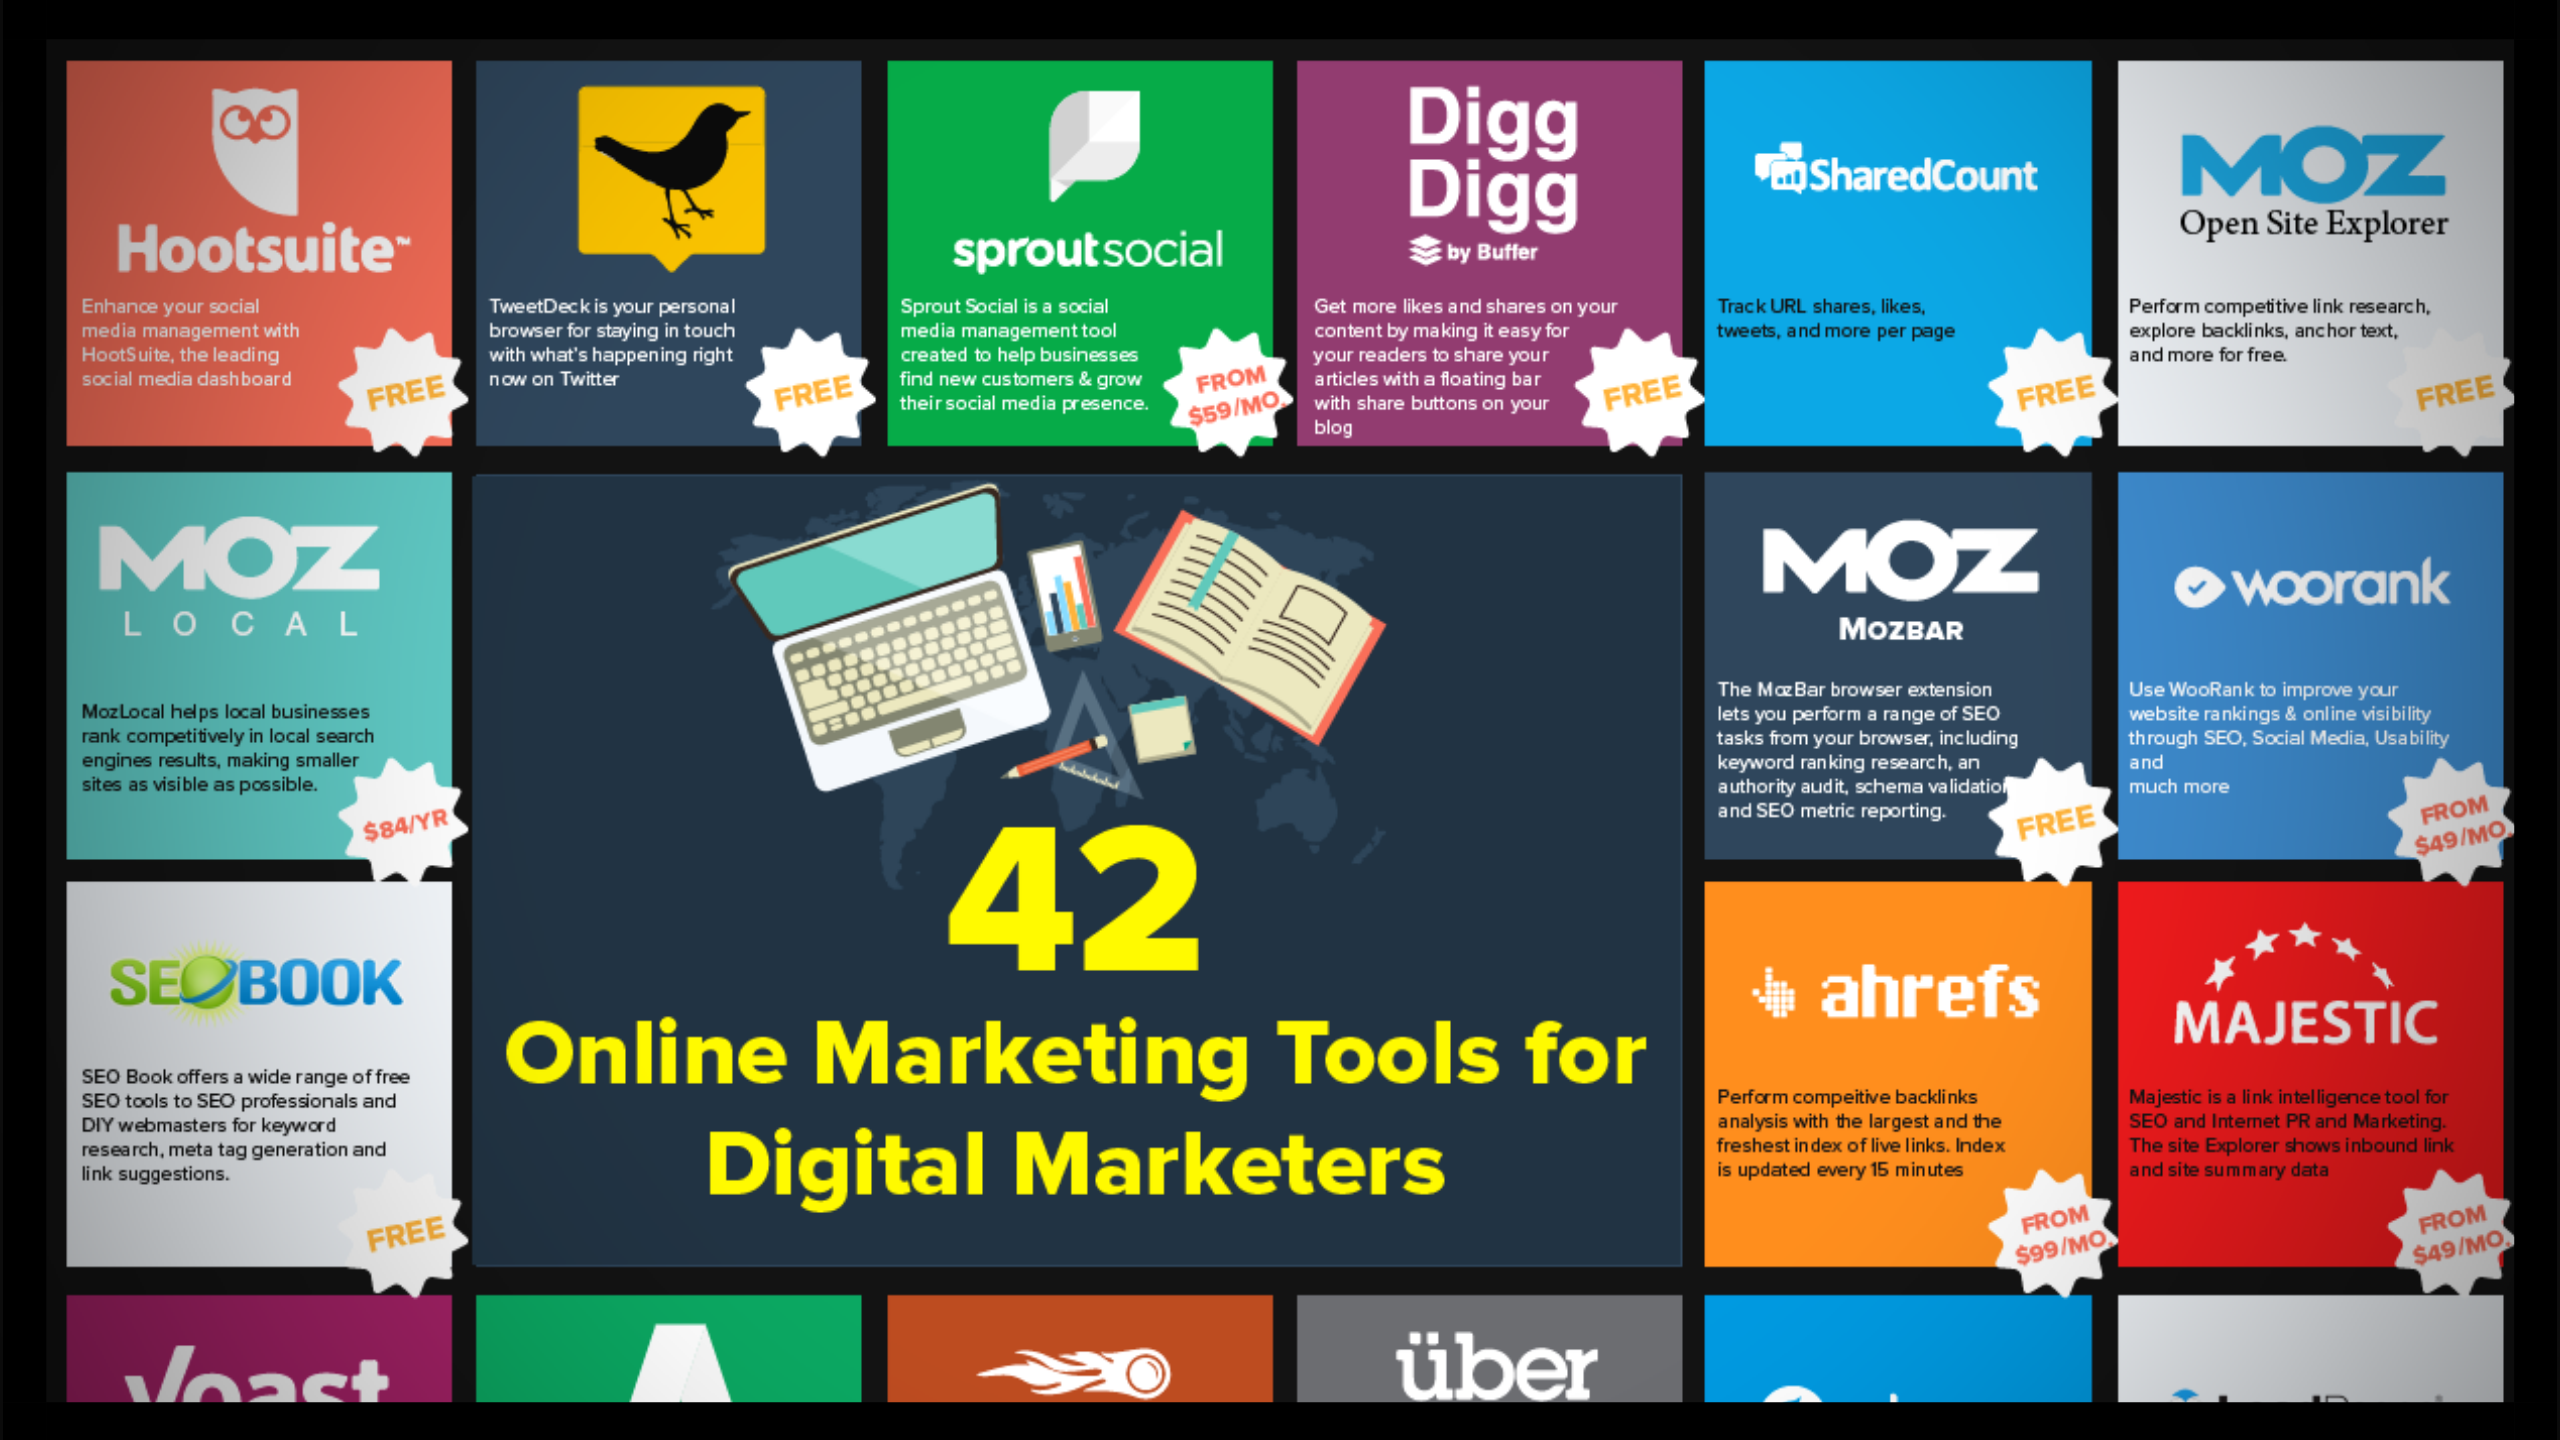 Online Marketing Tools Wiring Diagrams 18 Watt Audio Amplifier With Ha13118 Circuit Diagram 42 For Digital Marketers Infographic Examples Free